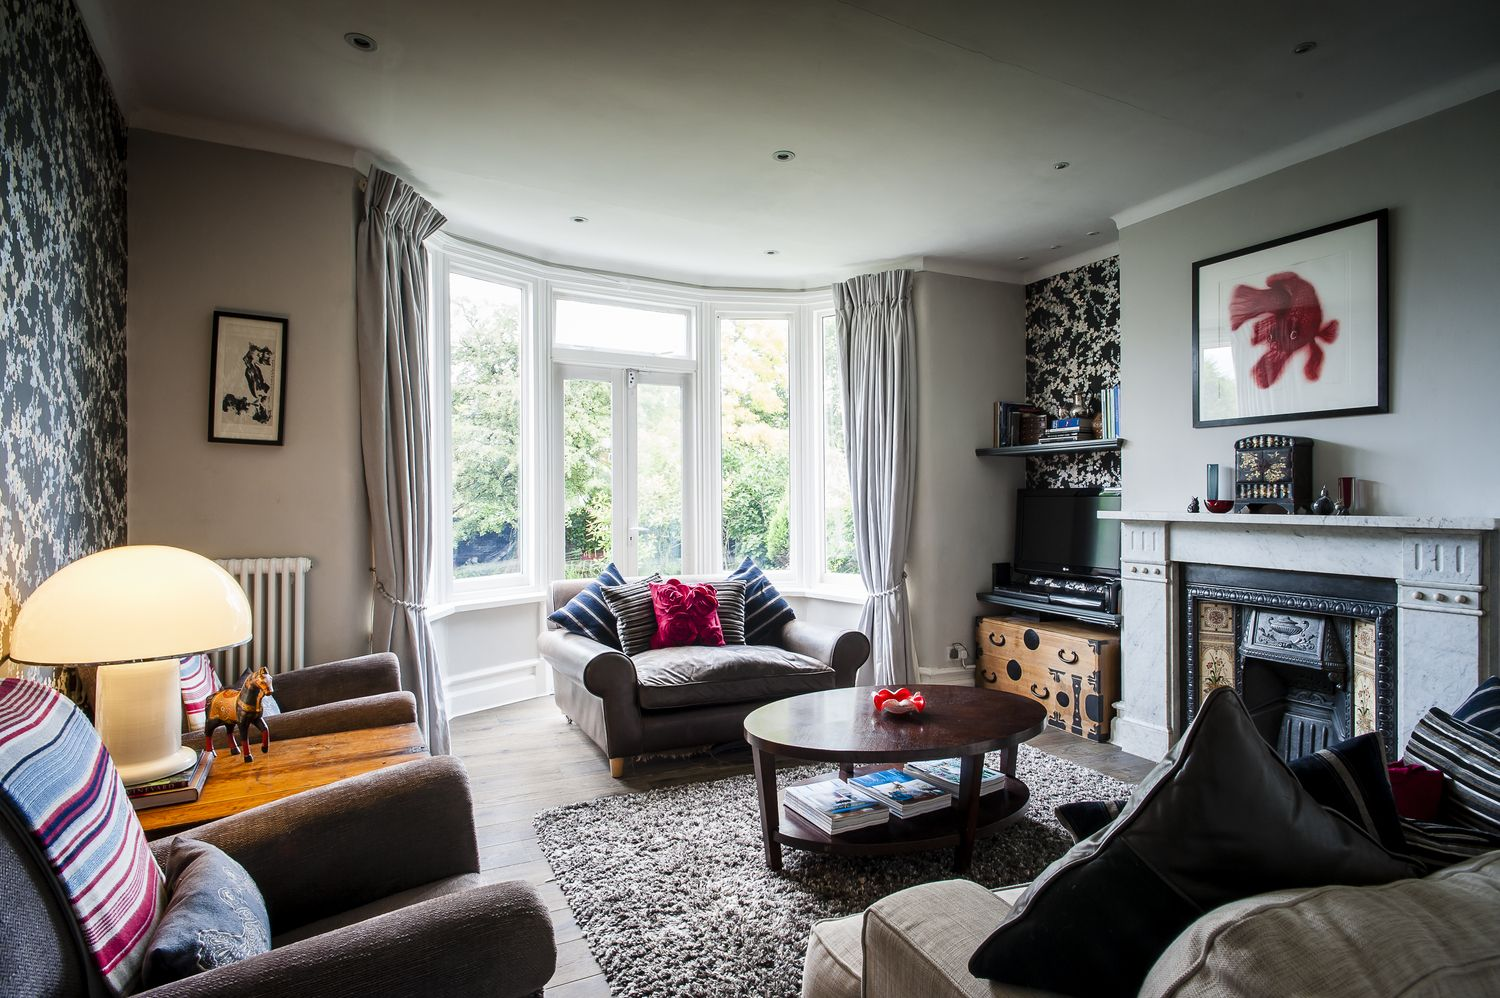 East Finchley Interior Design Project | Design projects, Interiors ...